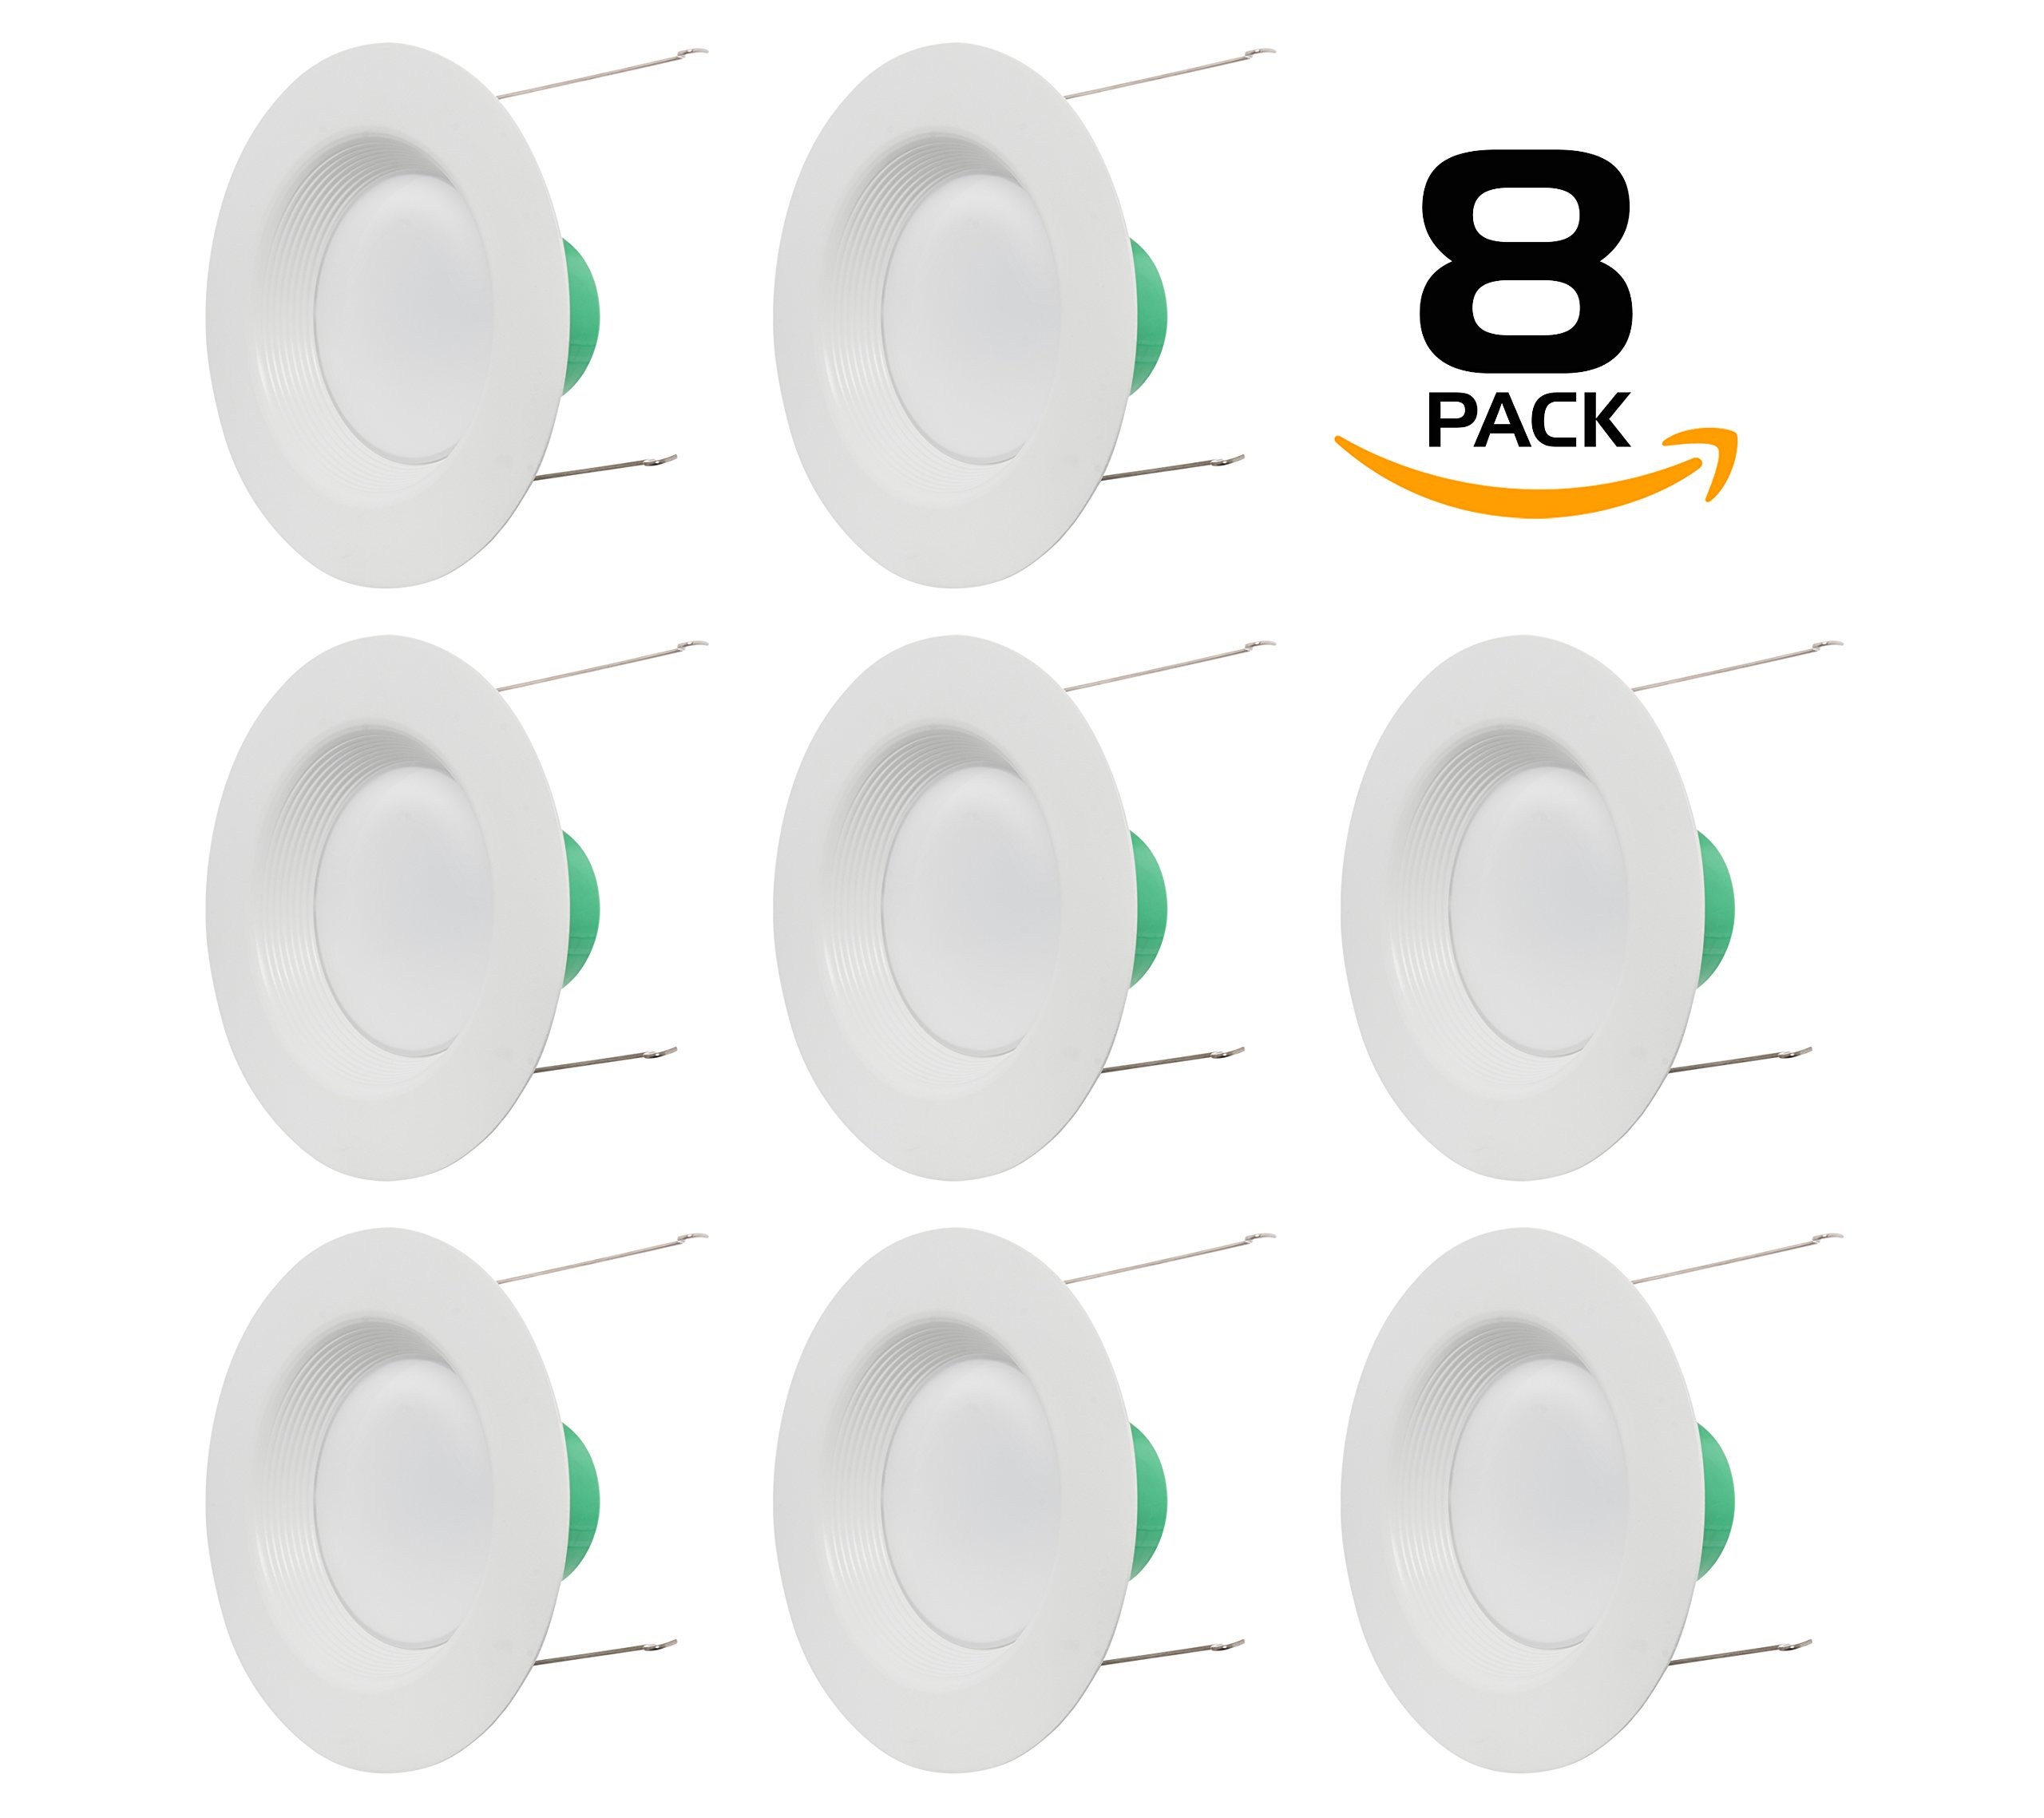 Westgate Lighting 18W 6 Inch LED Retrofit Downlight With Integrated Baffle Trim - Dimmable LED Recessed Light Fixture Kit For Home, Kitchen,Office - 120V High Lumen (8 Pack, 5000k Bright White) by Westgate